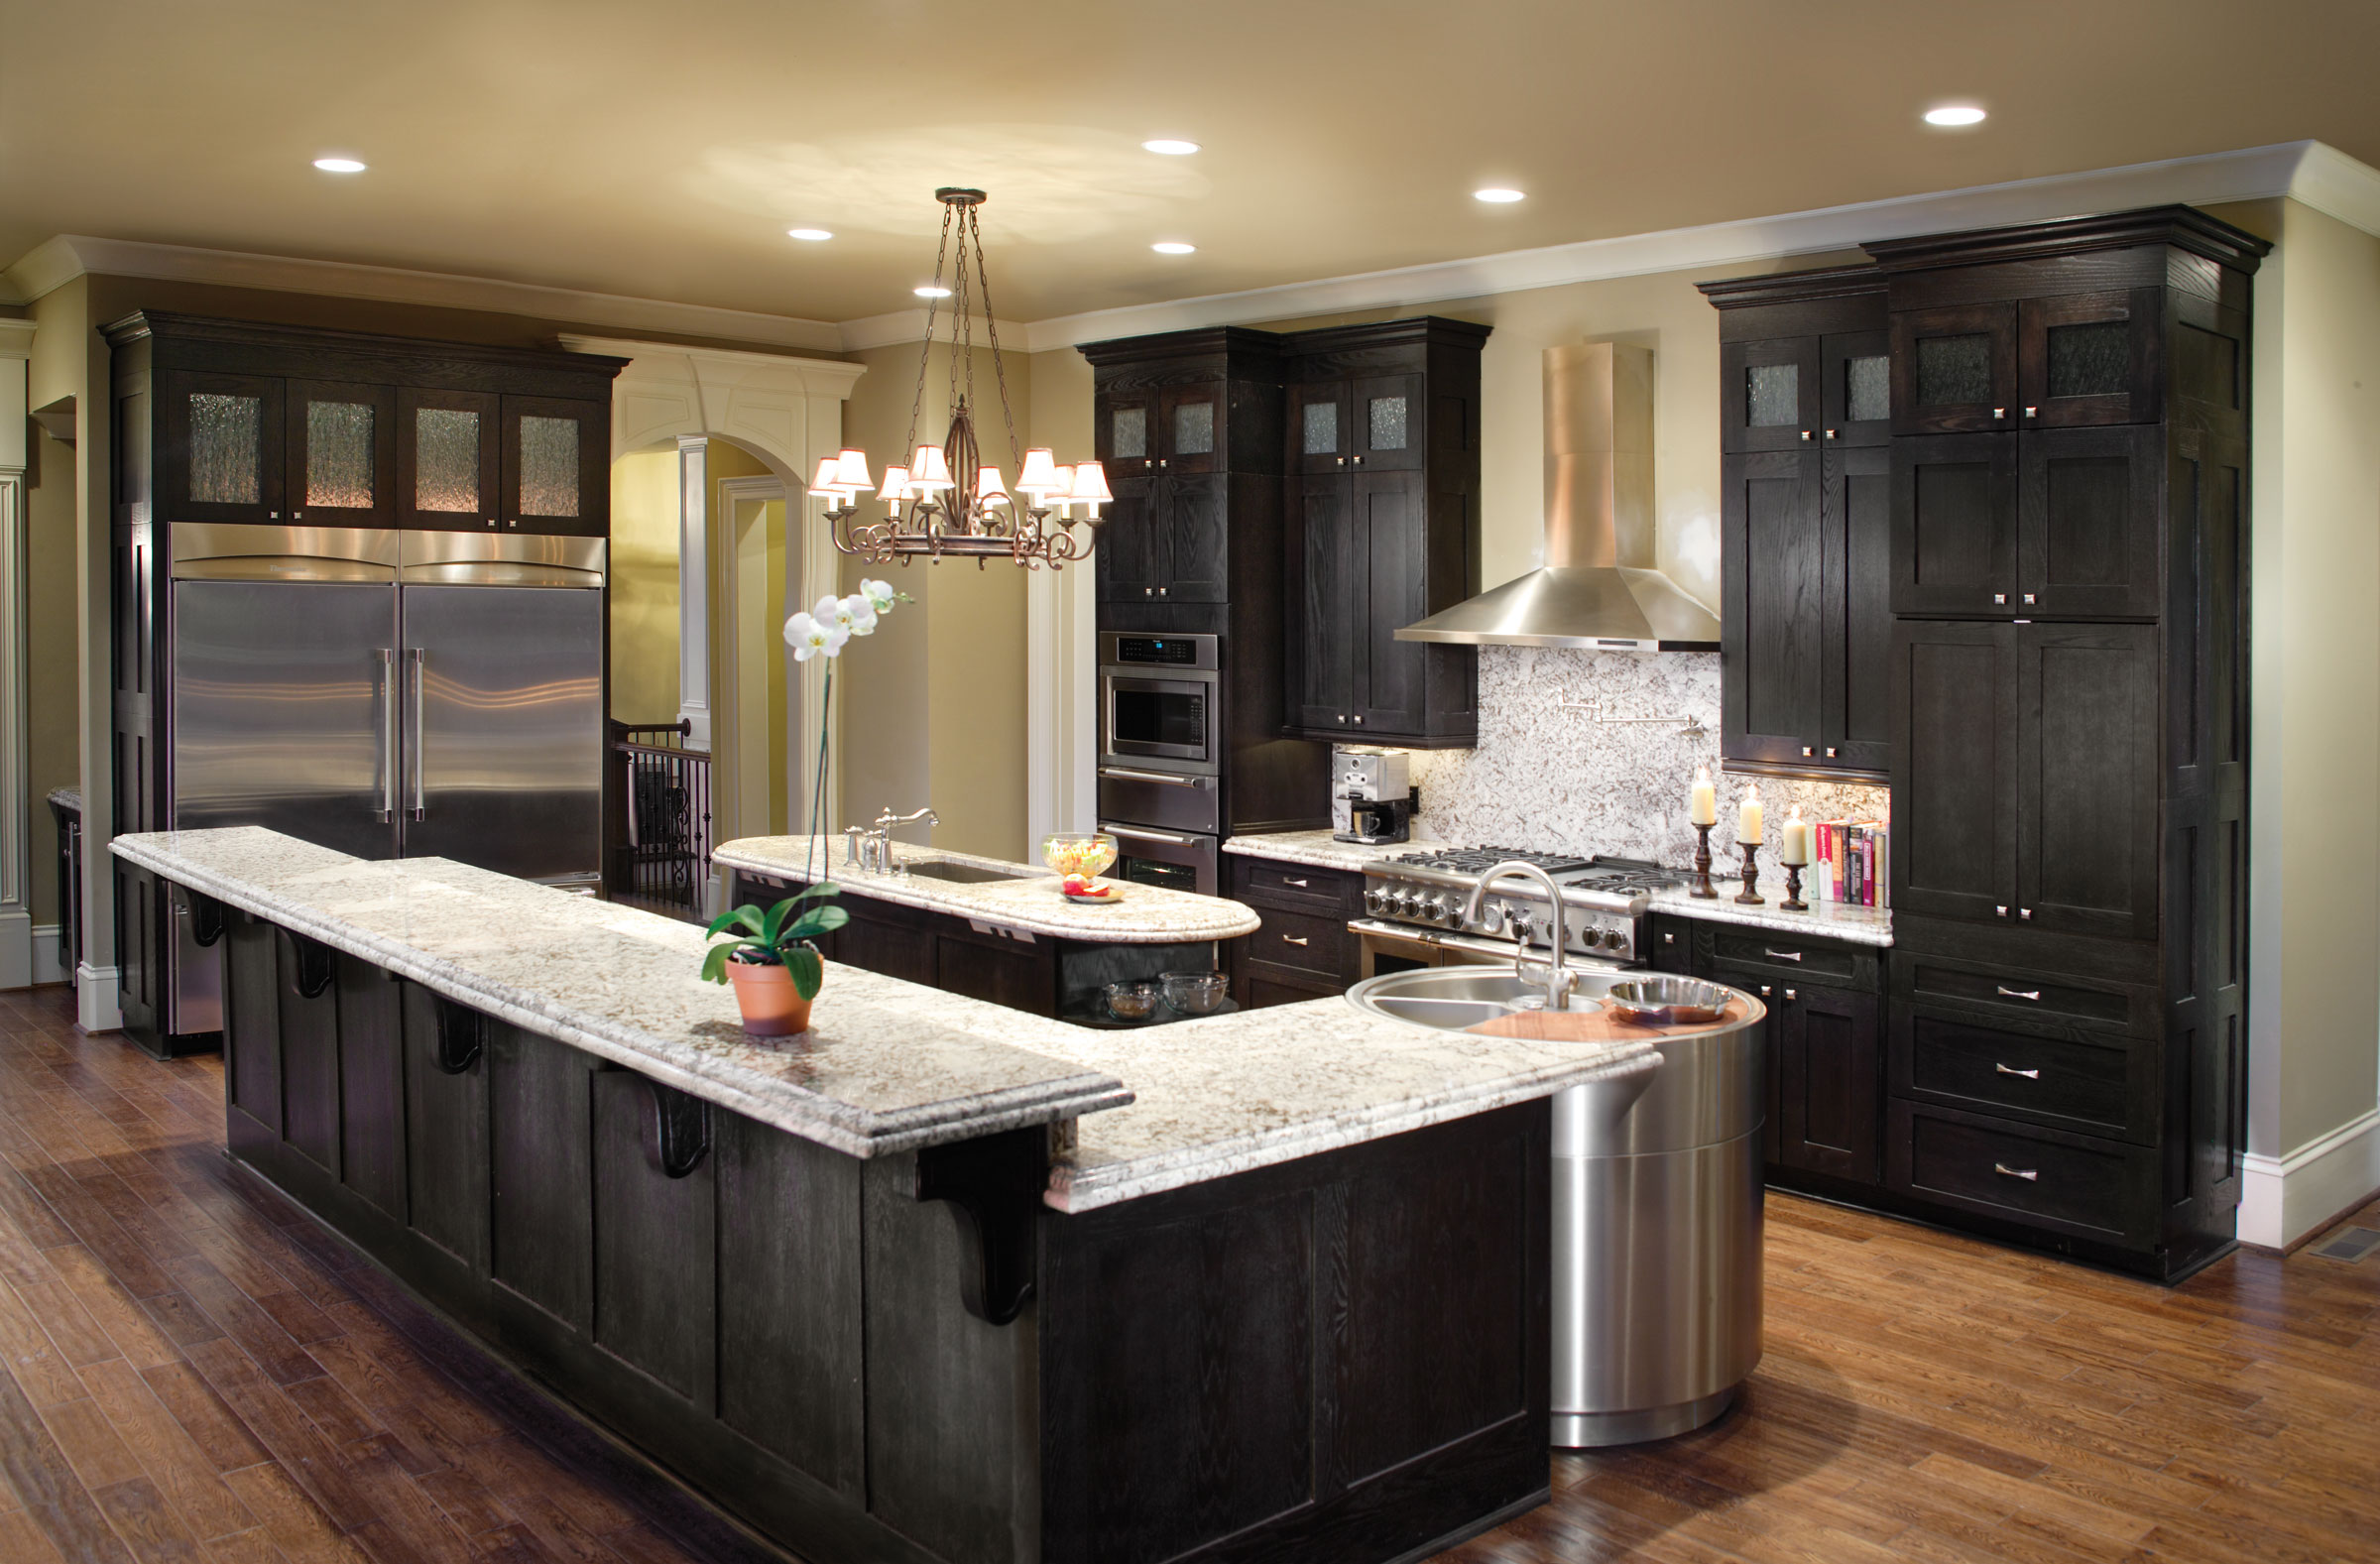 Cabinet manufacturers in phoenix az cabinets matttroy for Kitchen manufacturers